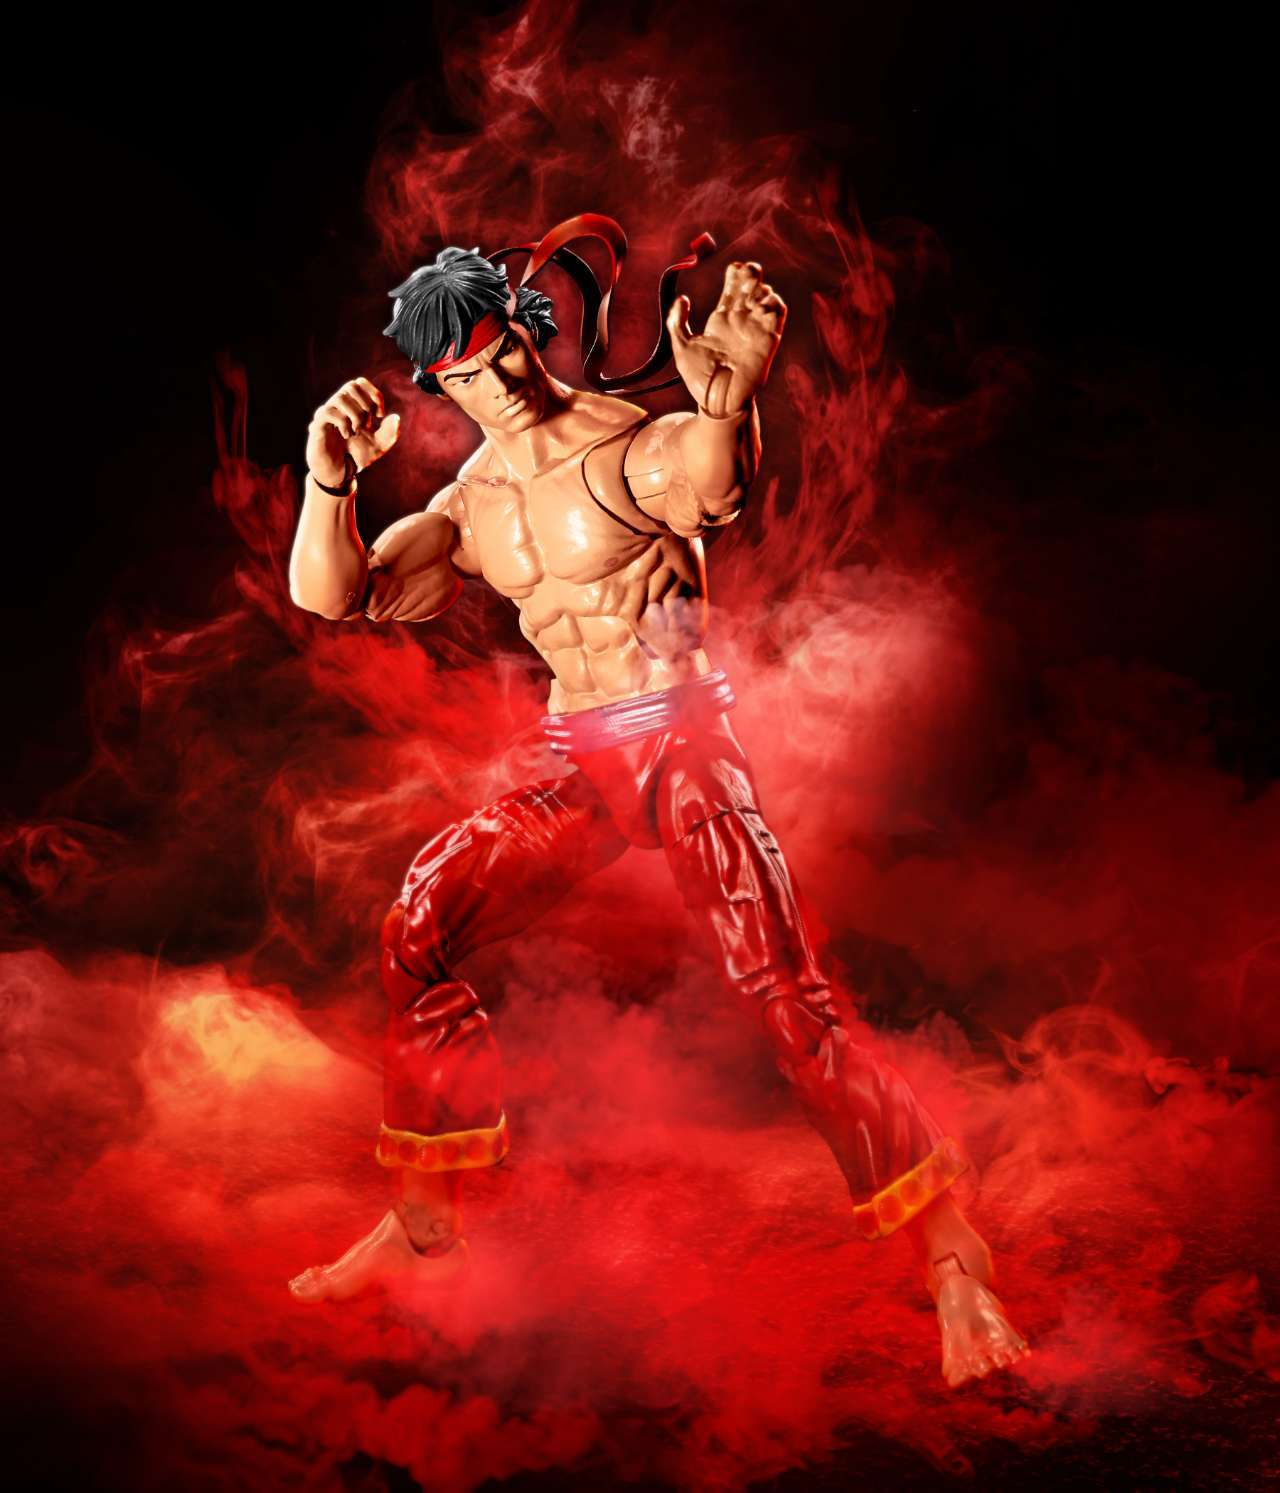 HASBRO MARVEL LEGENDS SERIES 6-INCH SHANG-CHI